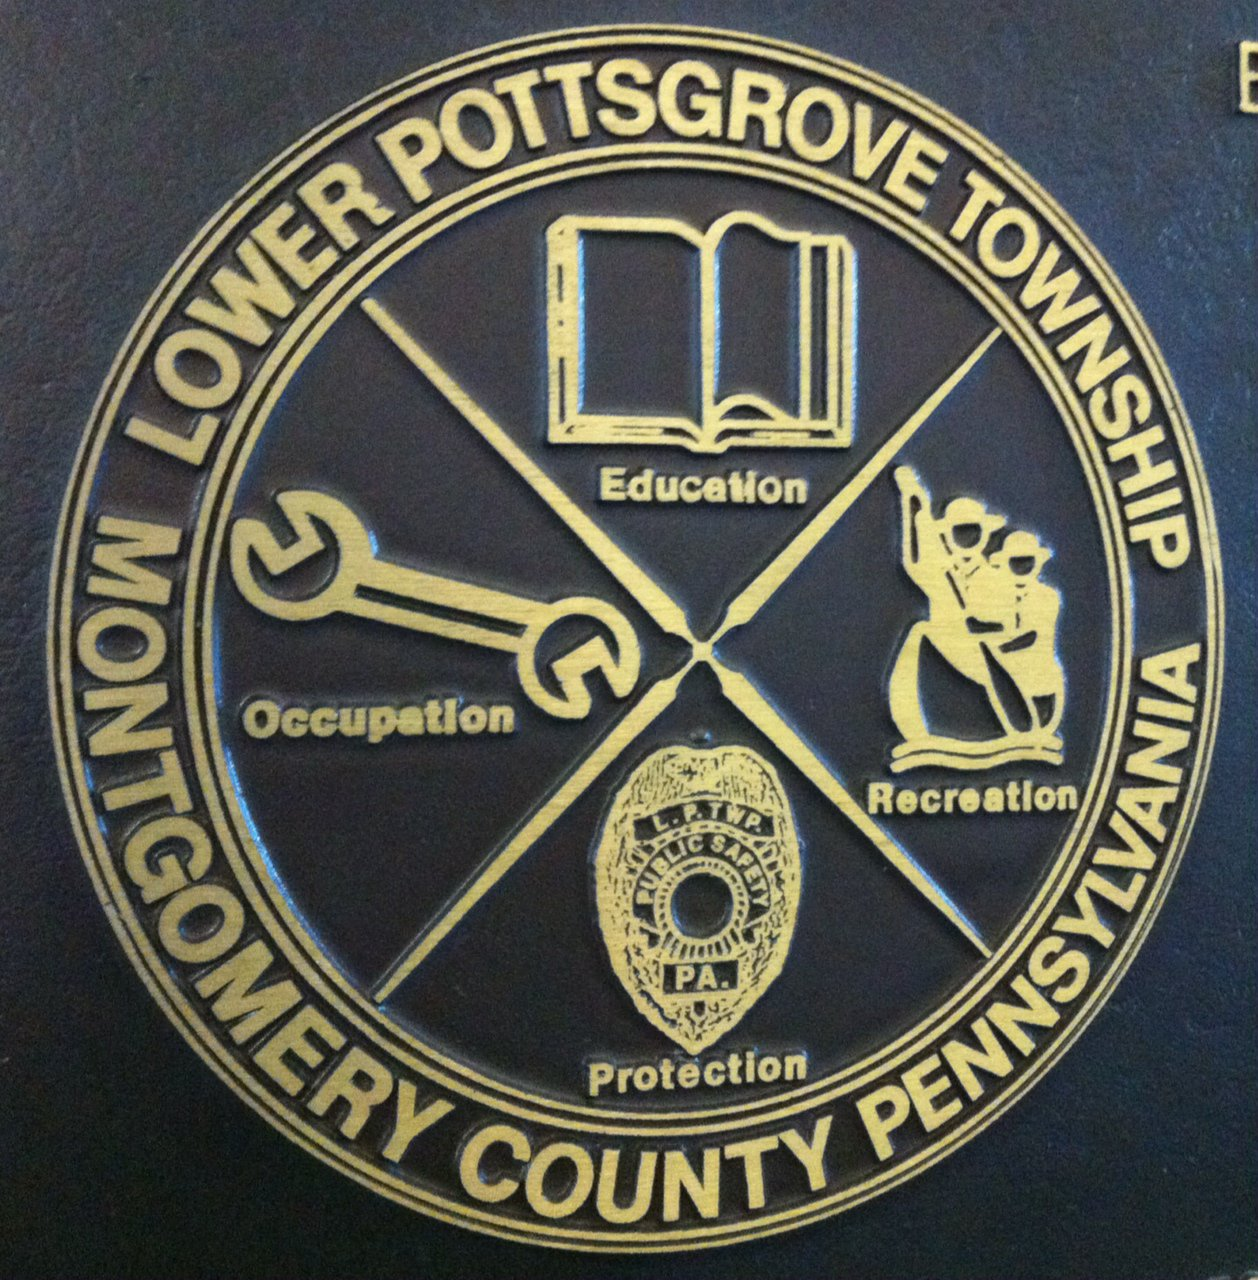 Head to Lower Pottsgrove Commissioners tonight, where discussion of the Route 422  Sanatoga Interchange in on the agenda. Follow along here. https://t.co/g1jz6ZzsVE